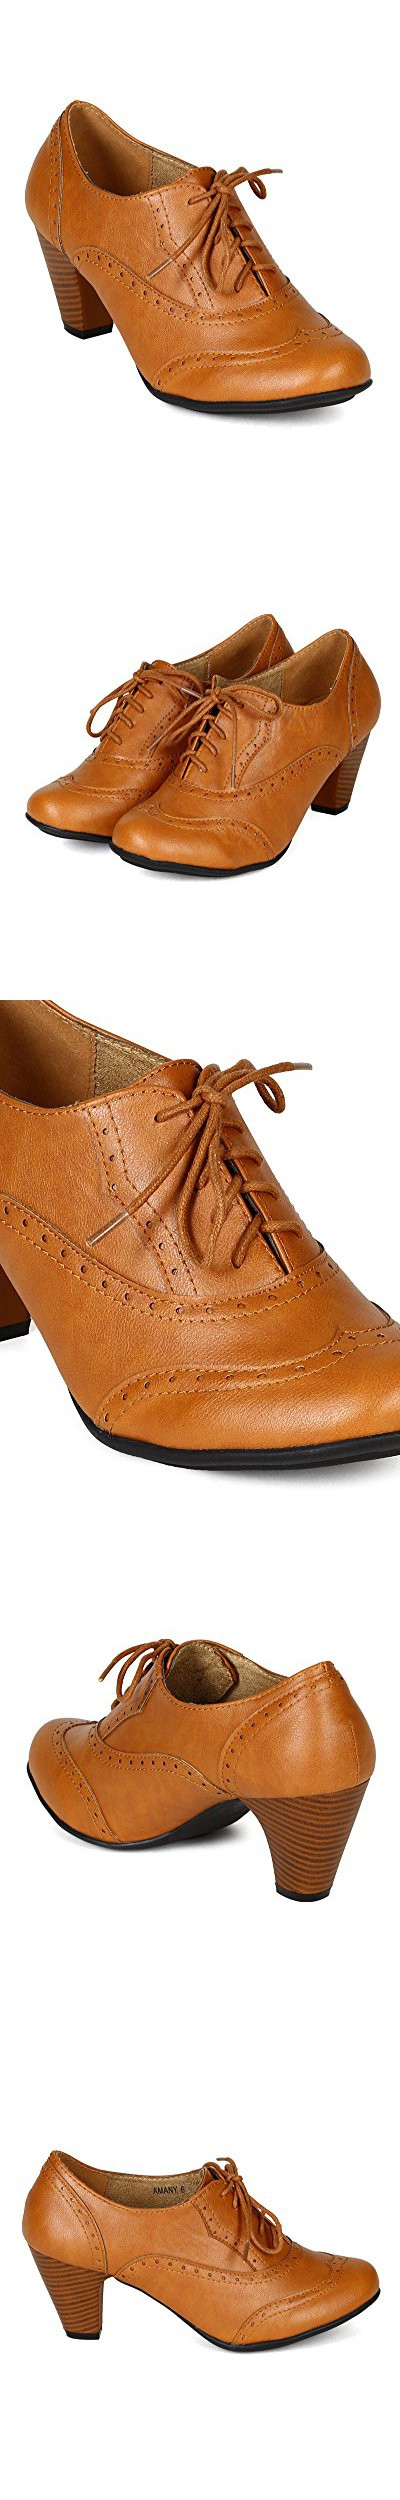 90b839f10440 Refresh BH50 Women Leatherette Lace Up Oxford Chunky Heel Bootie - Tan  (Size  10